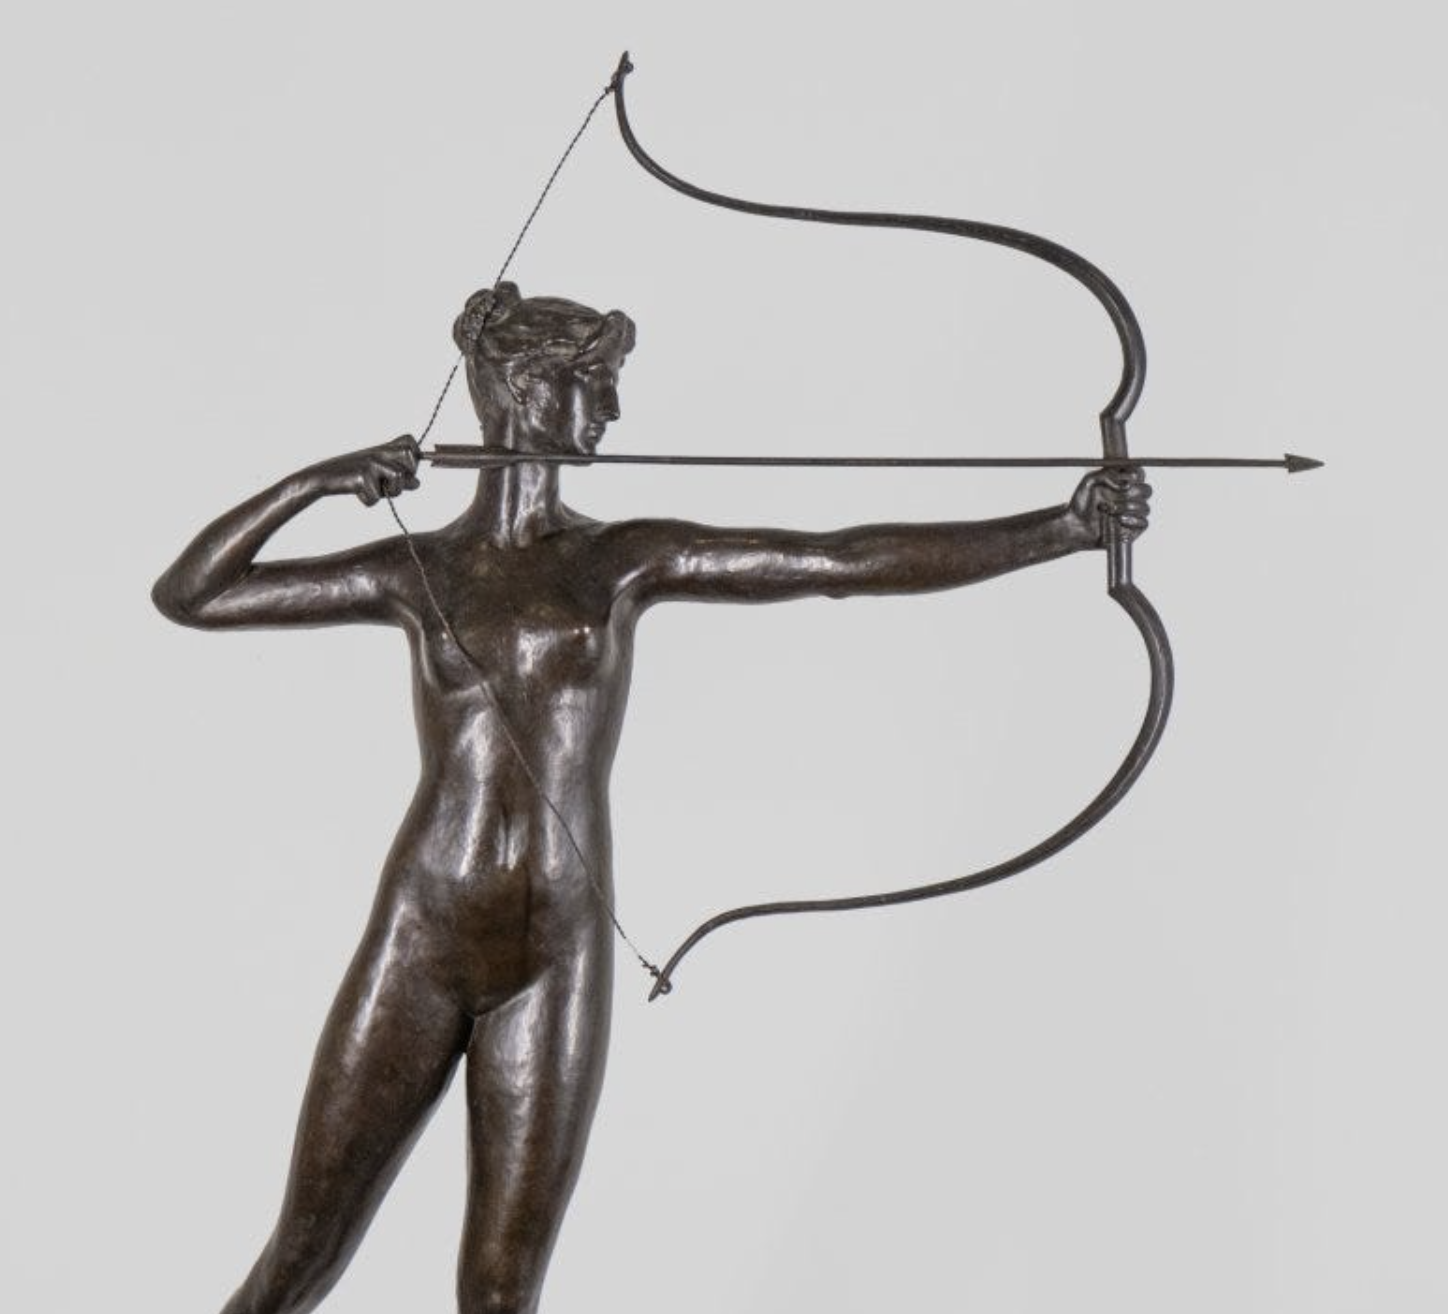 Saint-Gaudens: master sculptor of the Gilded Age